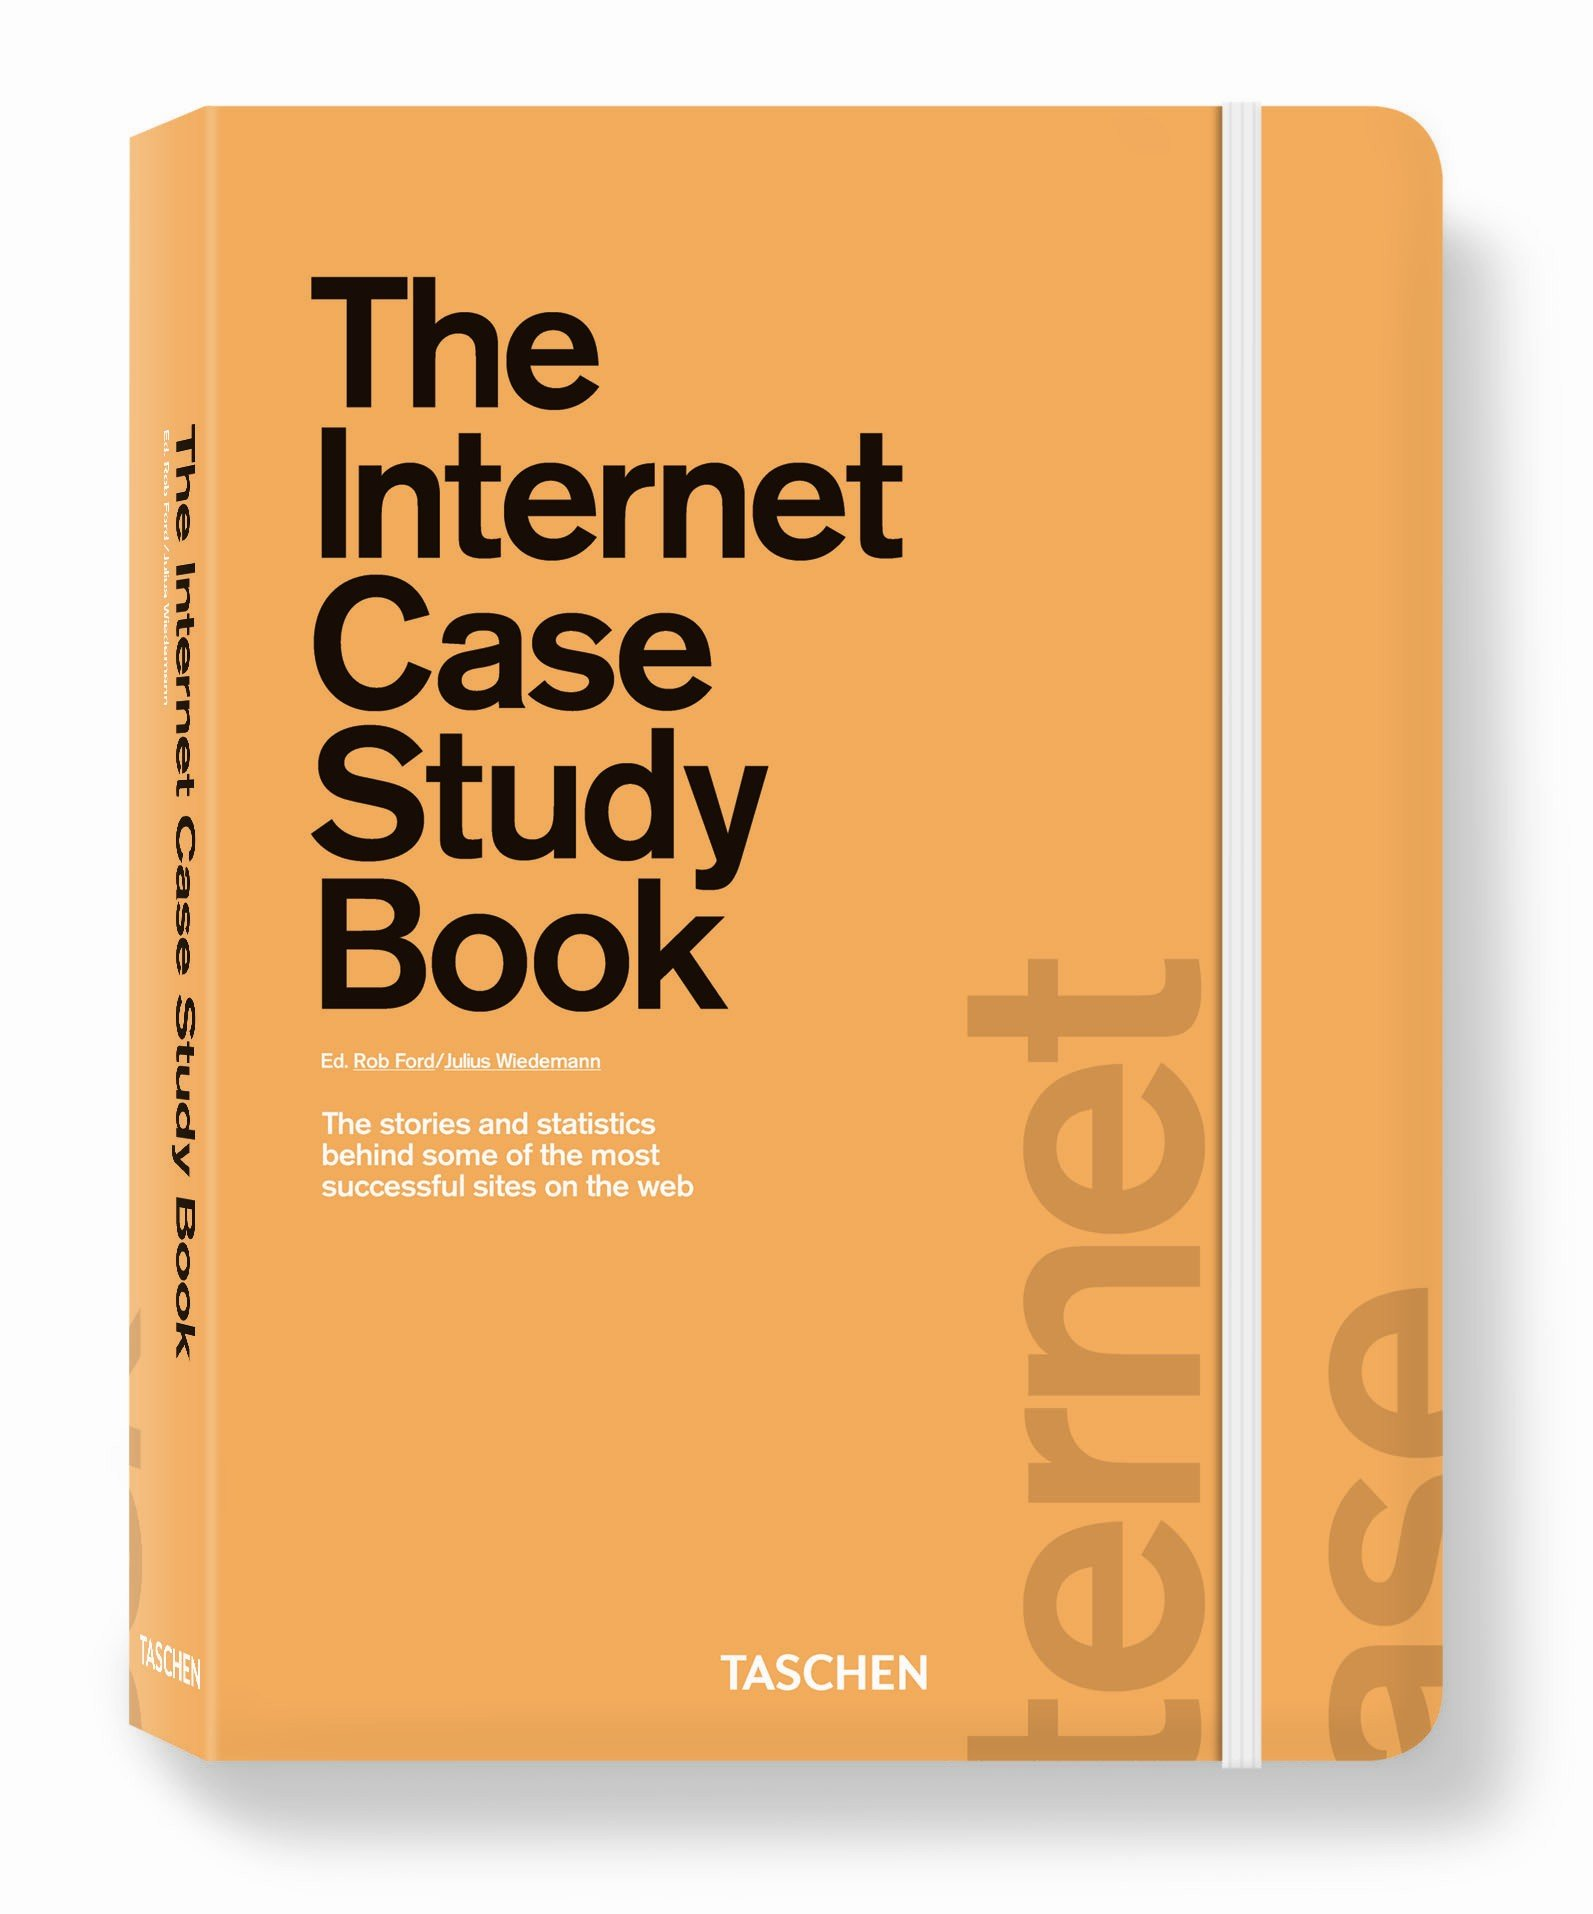 amazon case study essays Amazon case study ppt introduction: amazoncom was founded by jeff bezos in july 1994, after the former investment banker left new york for seattle with the idea of creating an online bookstore he launched the web site the following july with the idea of selling books to a mass audience through the internet.